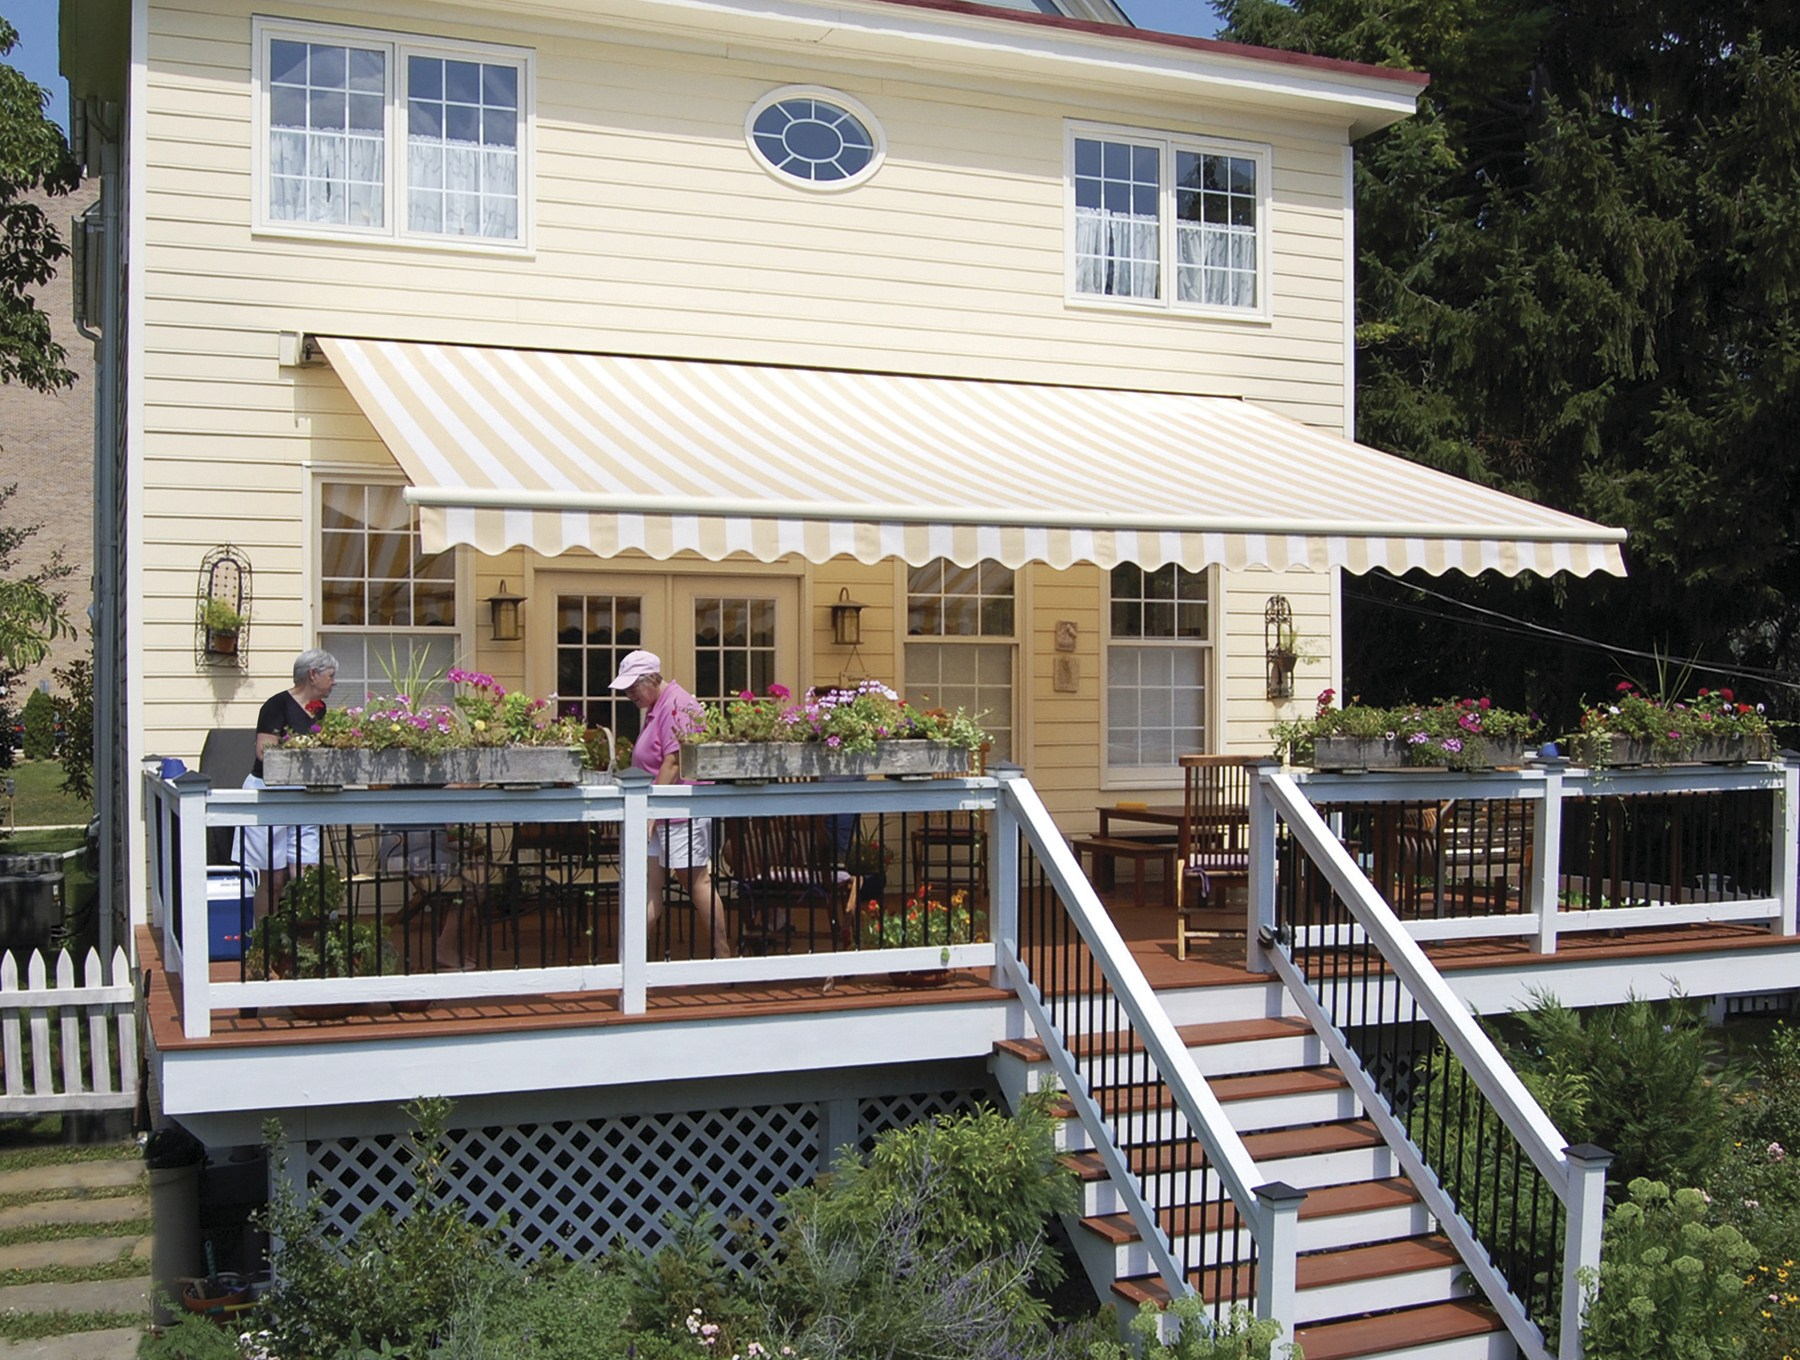 Outdoor Canopy Retractable Awning from Buschurs in Southwest Ohio